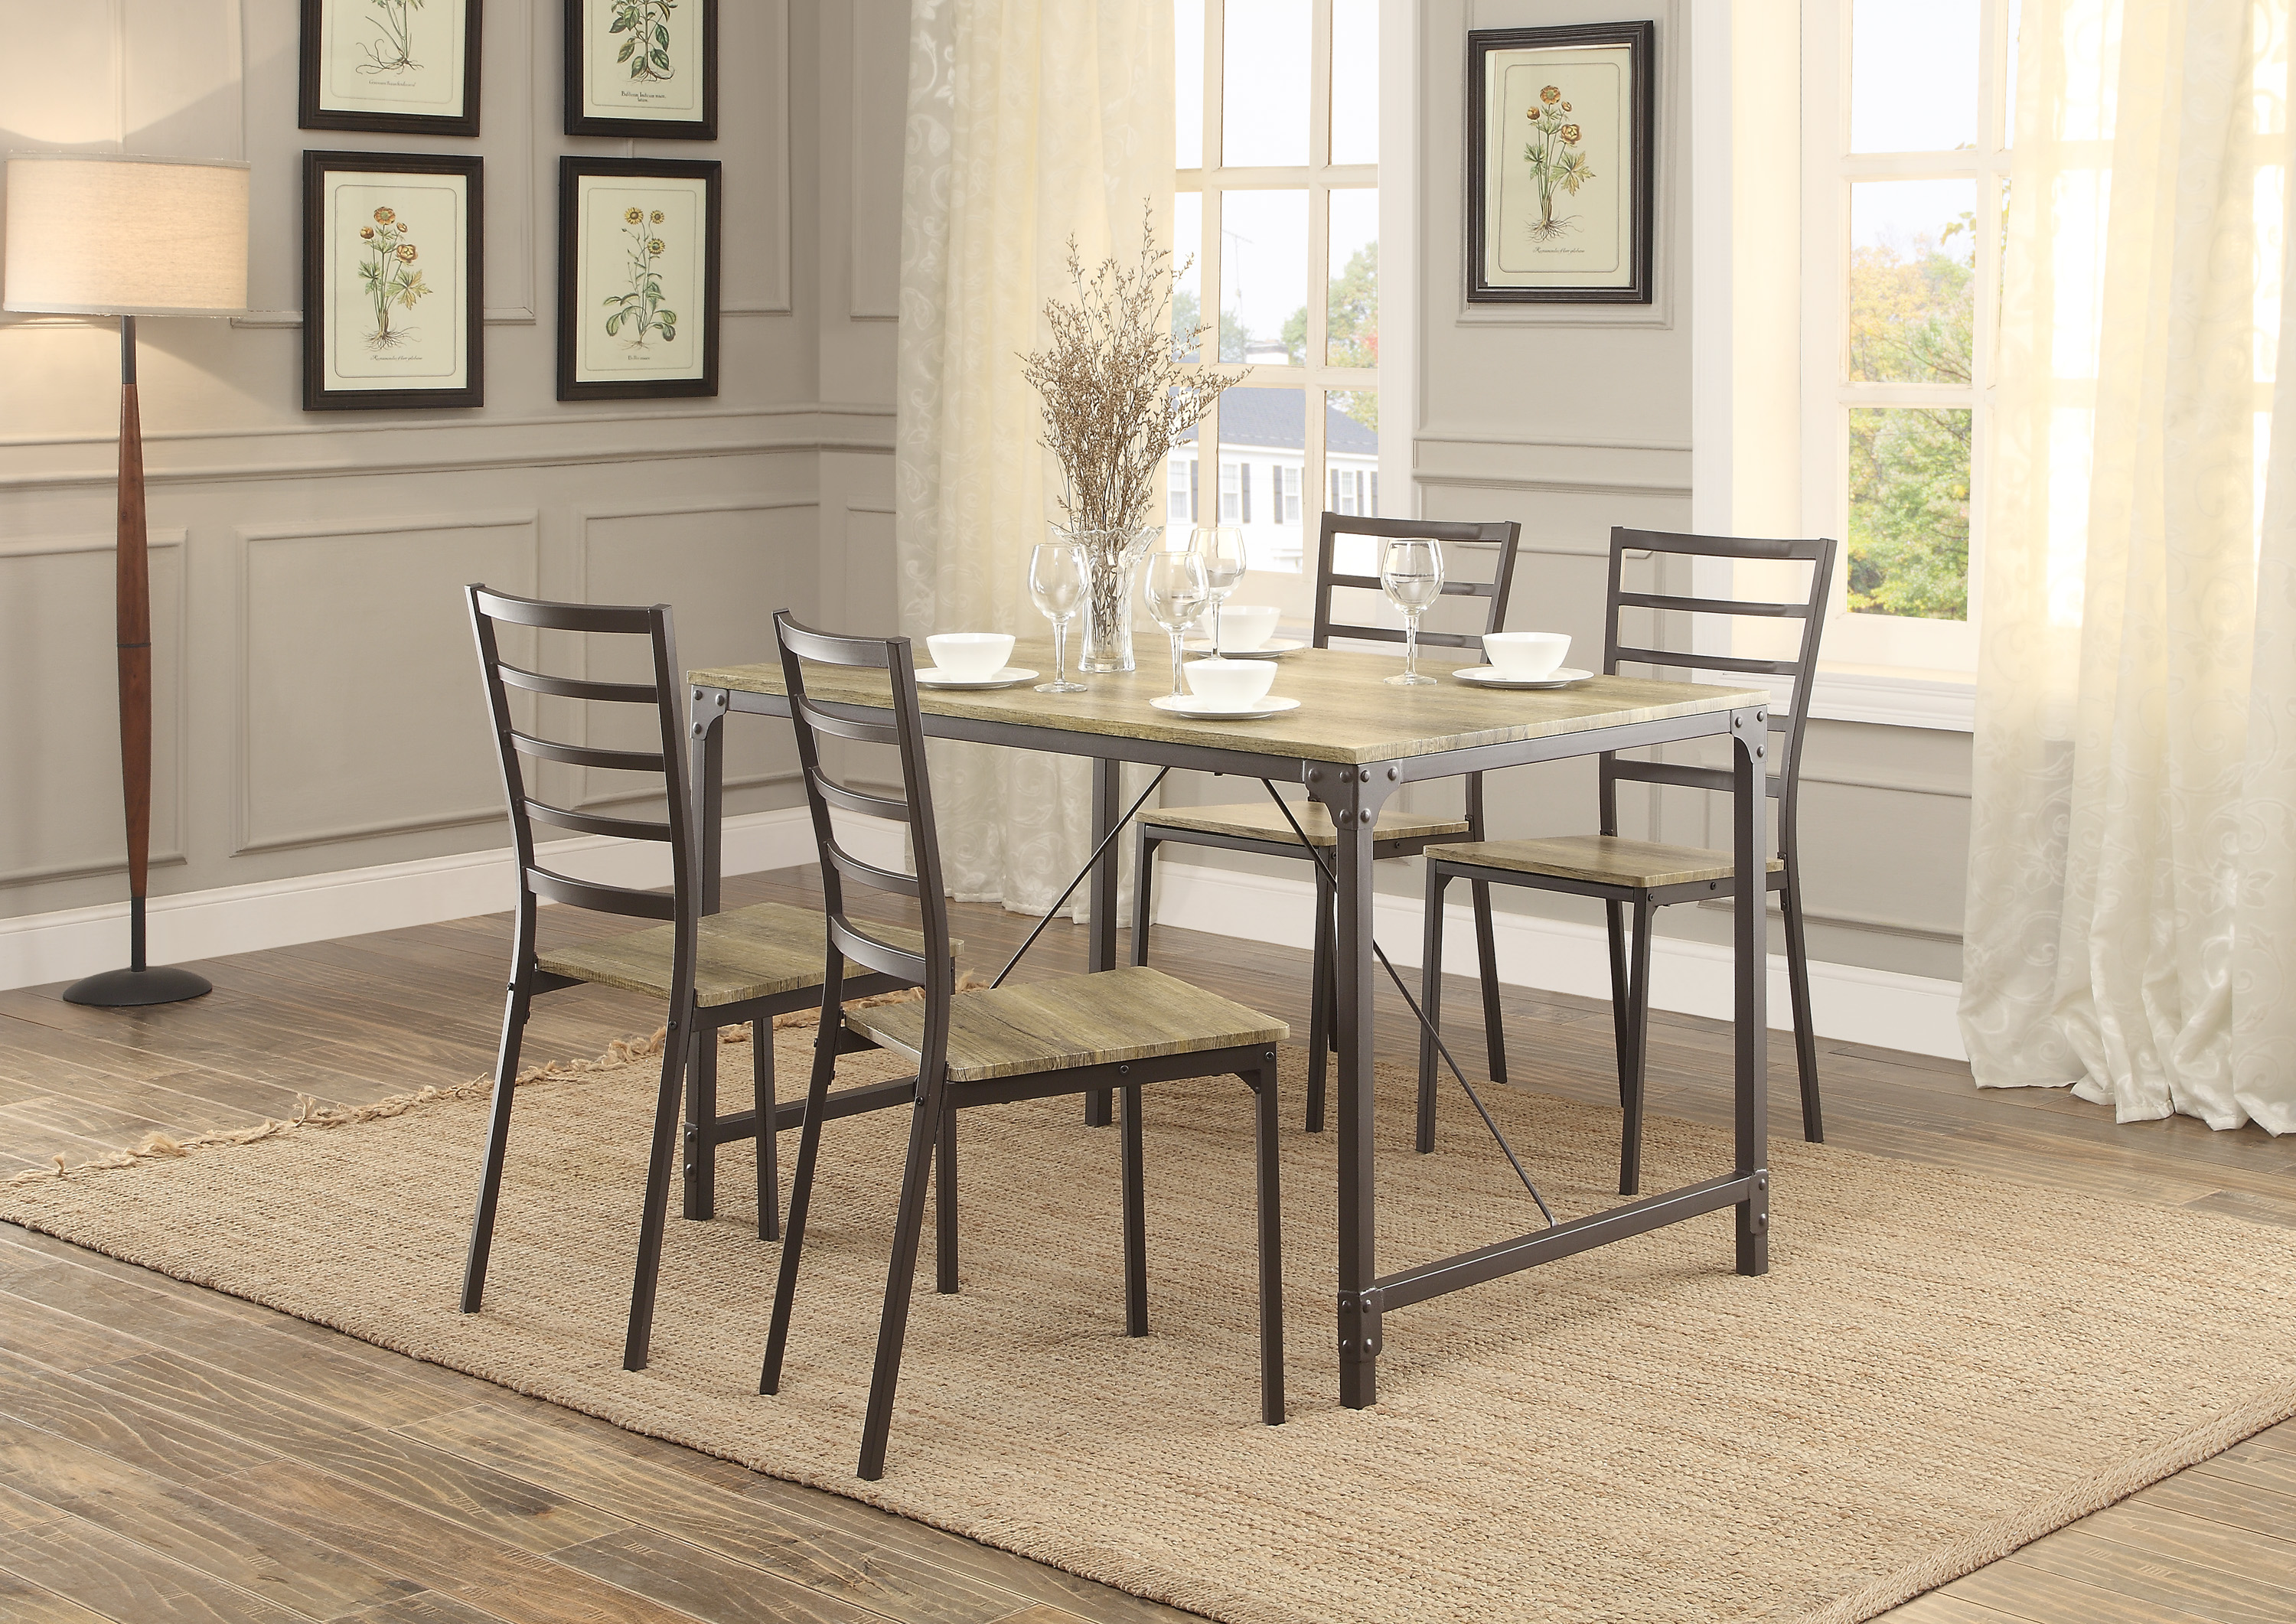 virtuemart_product_he-5264-rumi-dining-table-